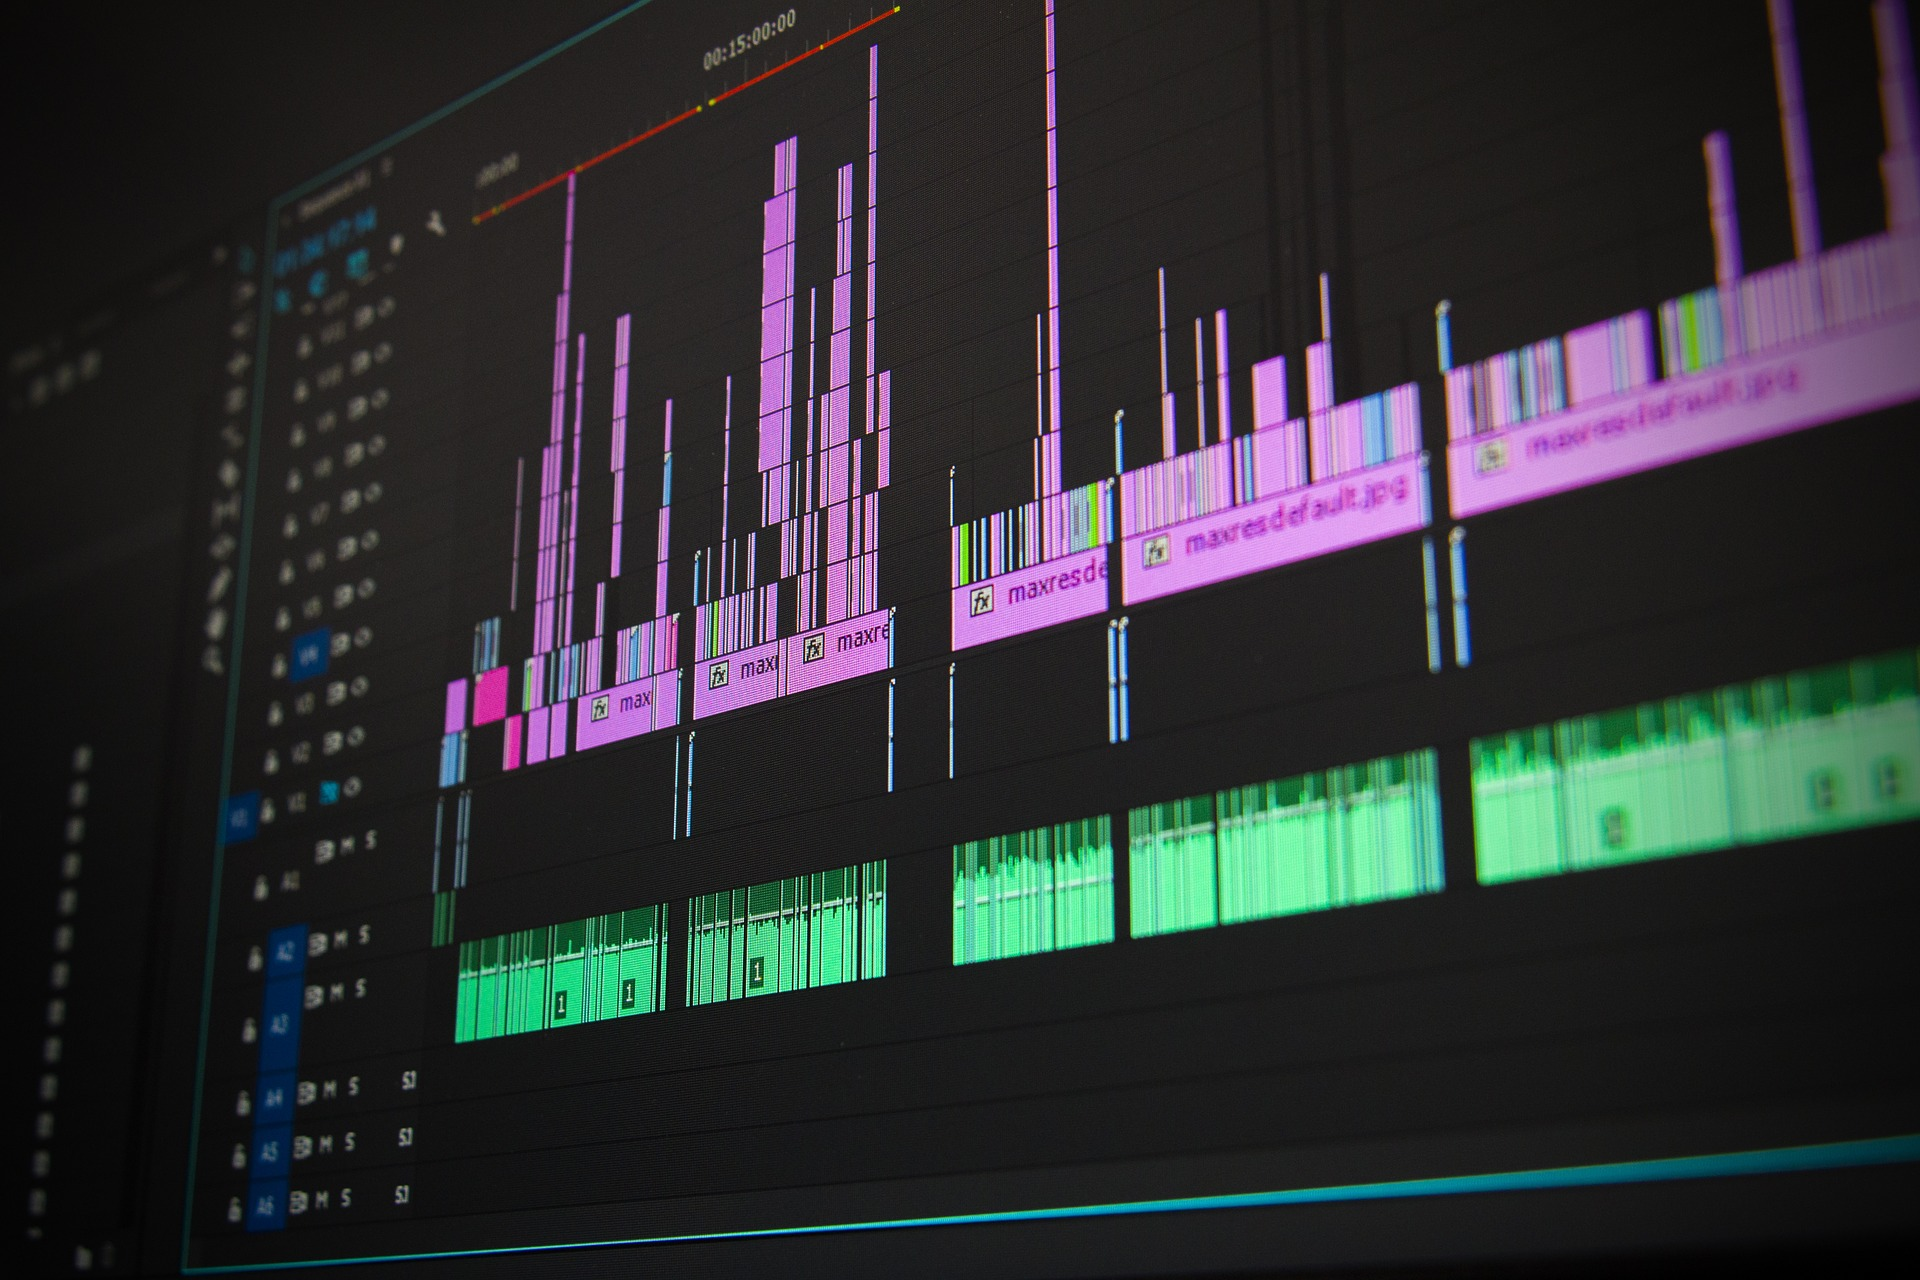 MY TOP SOFTWARE PICKS FOR VIDEO EDITING